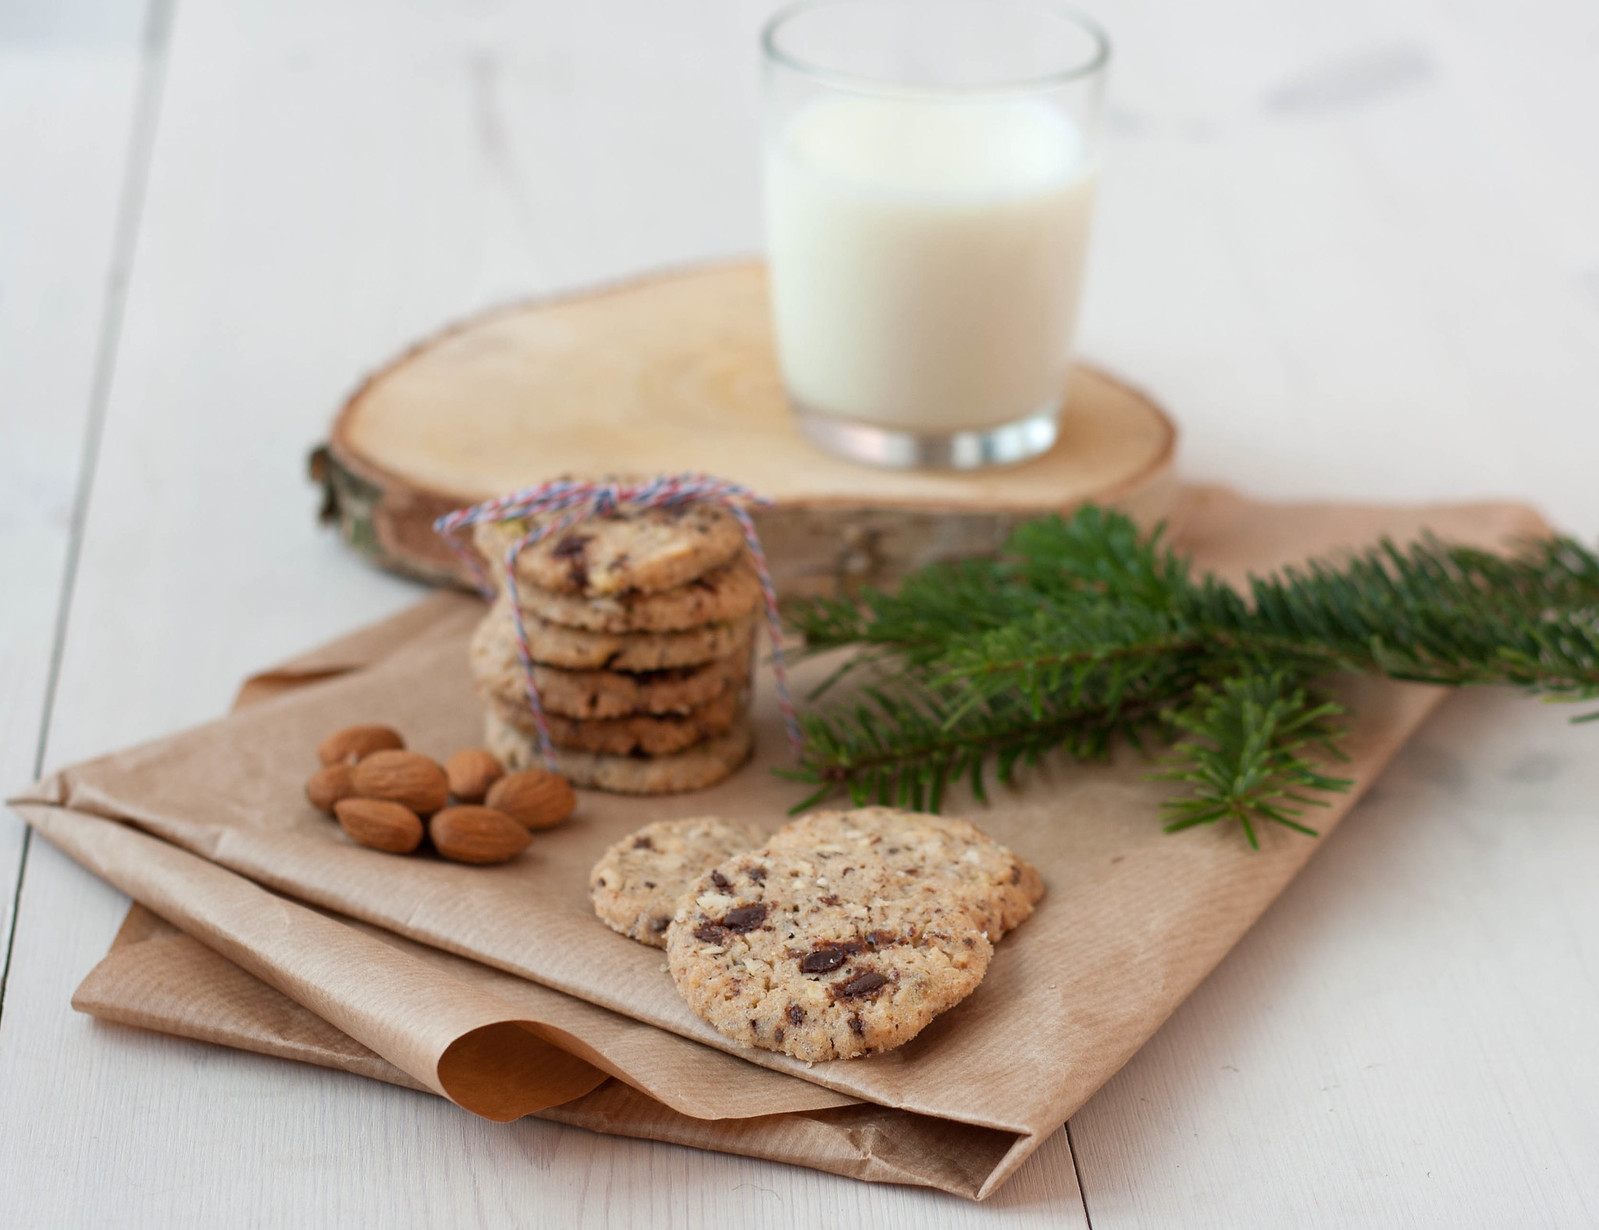 Recipe for Homemade Cookies with Nuts and Chocolate